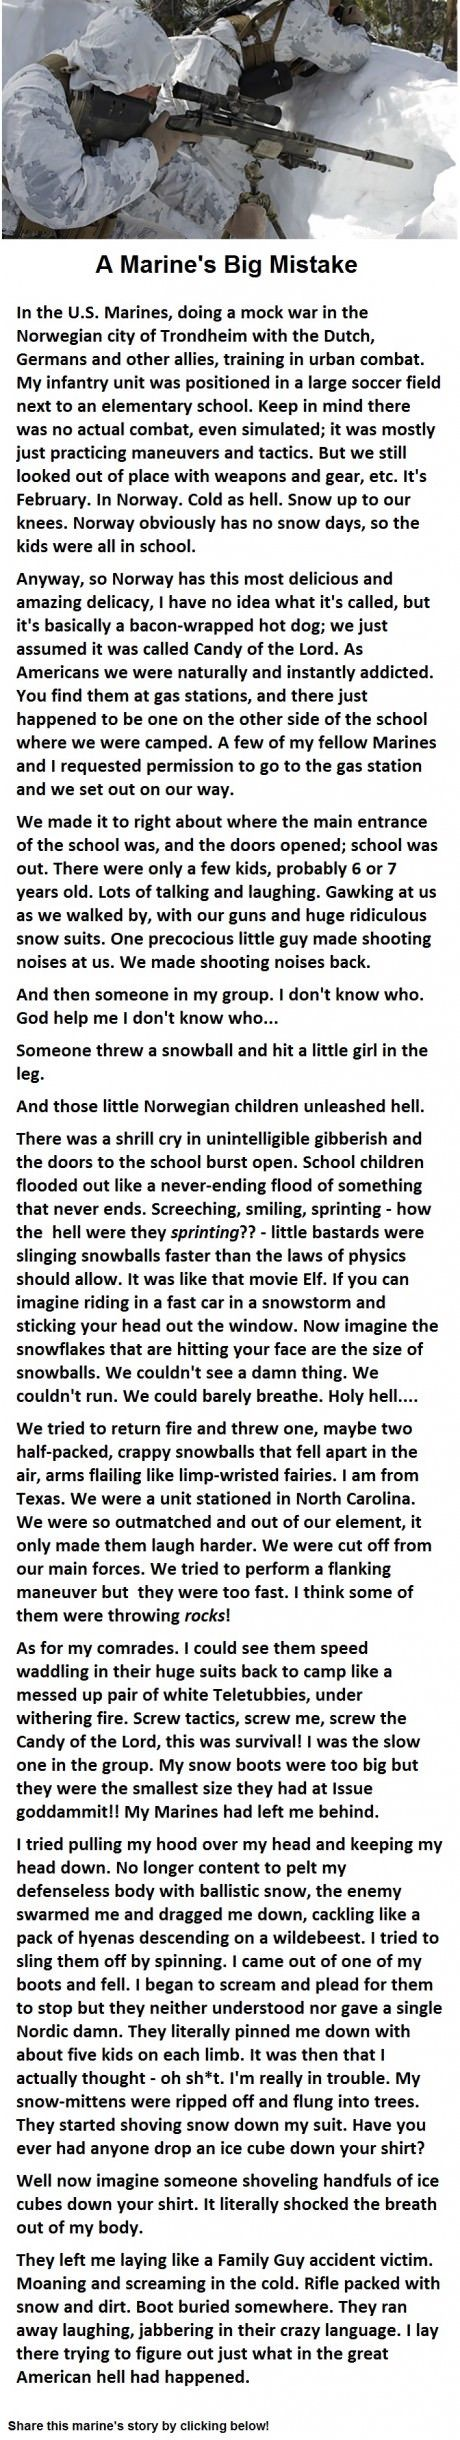 As a Norwegian this is the funniest shit I have read all day.  This I literally how we play in snow.